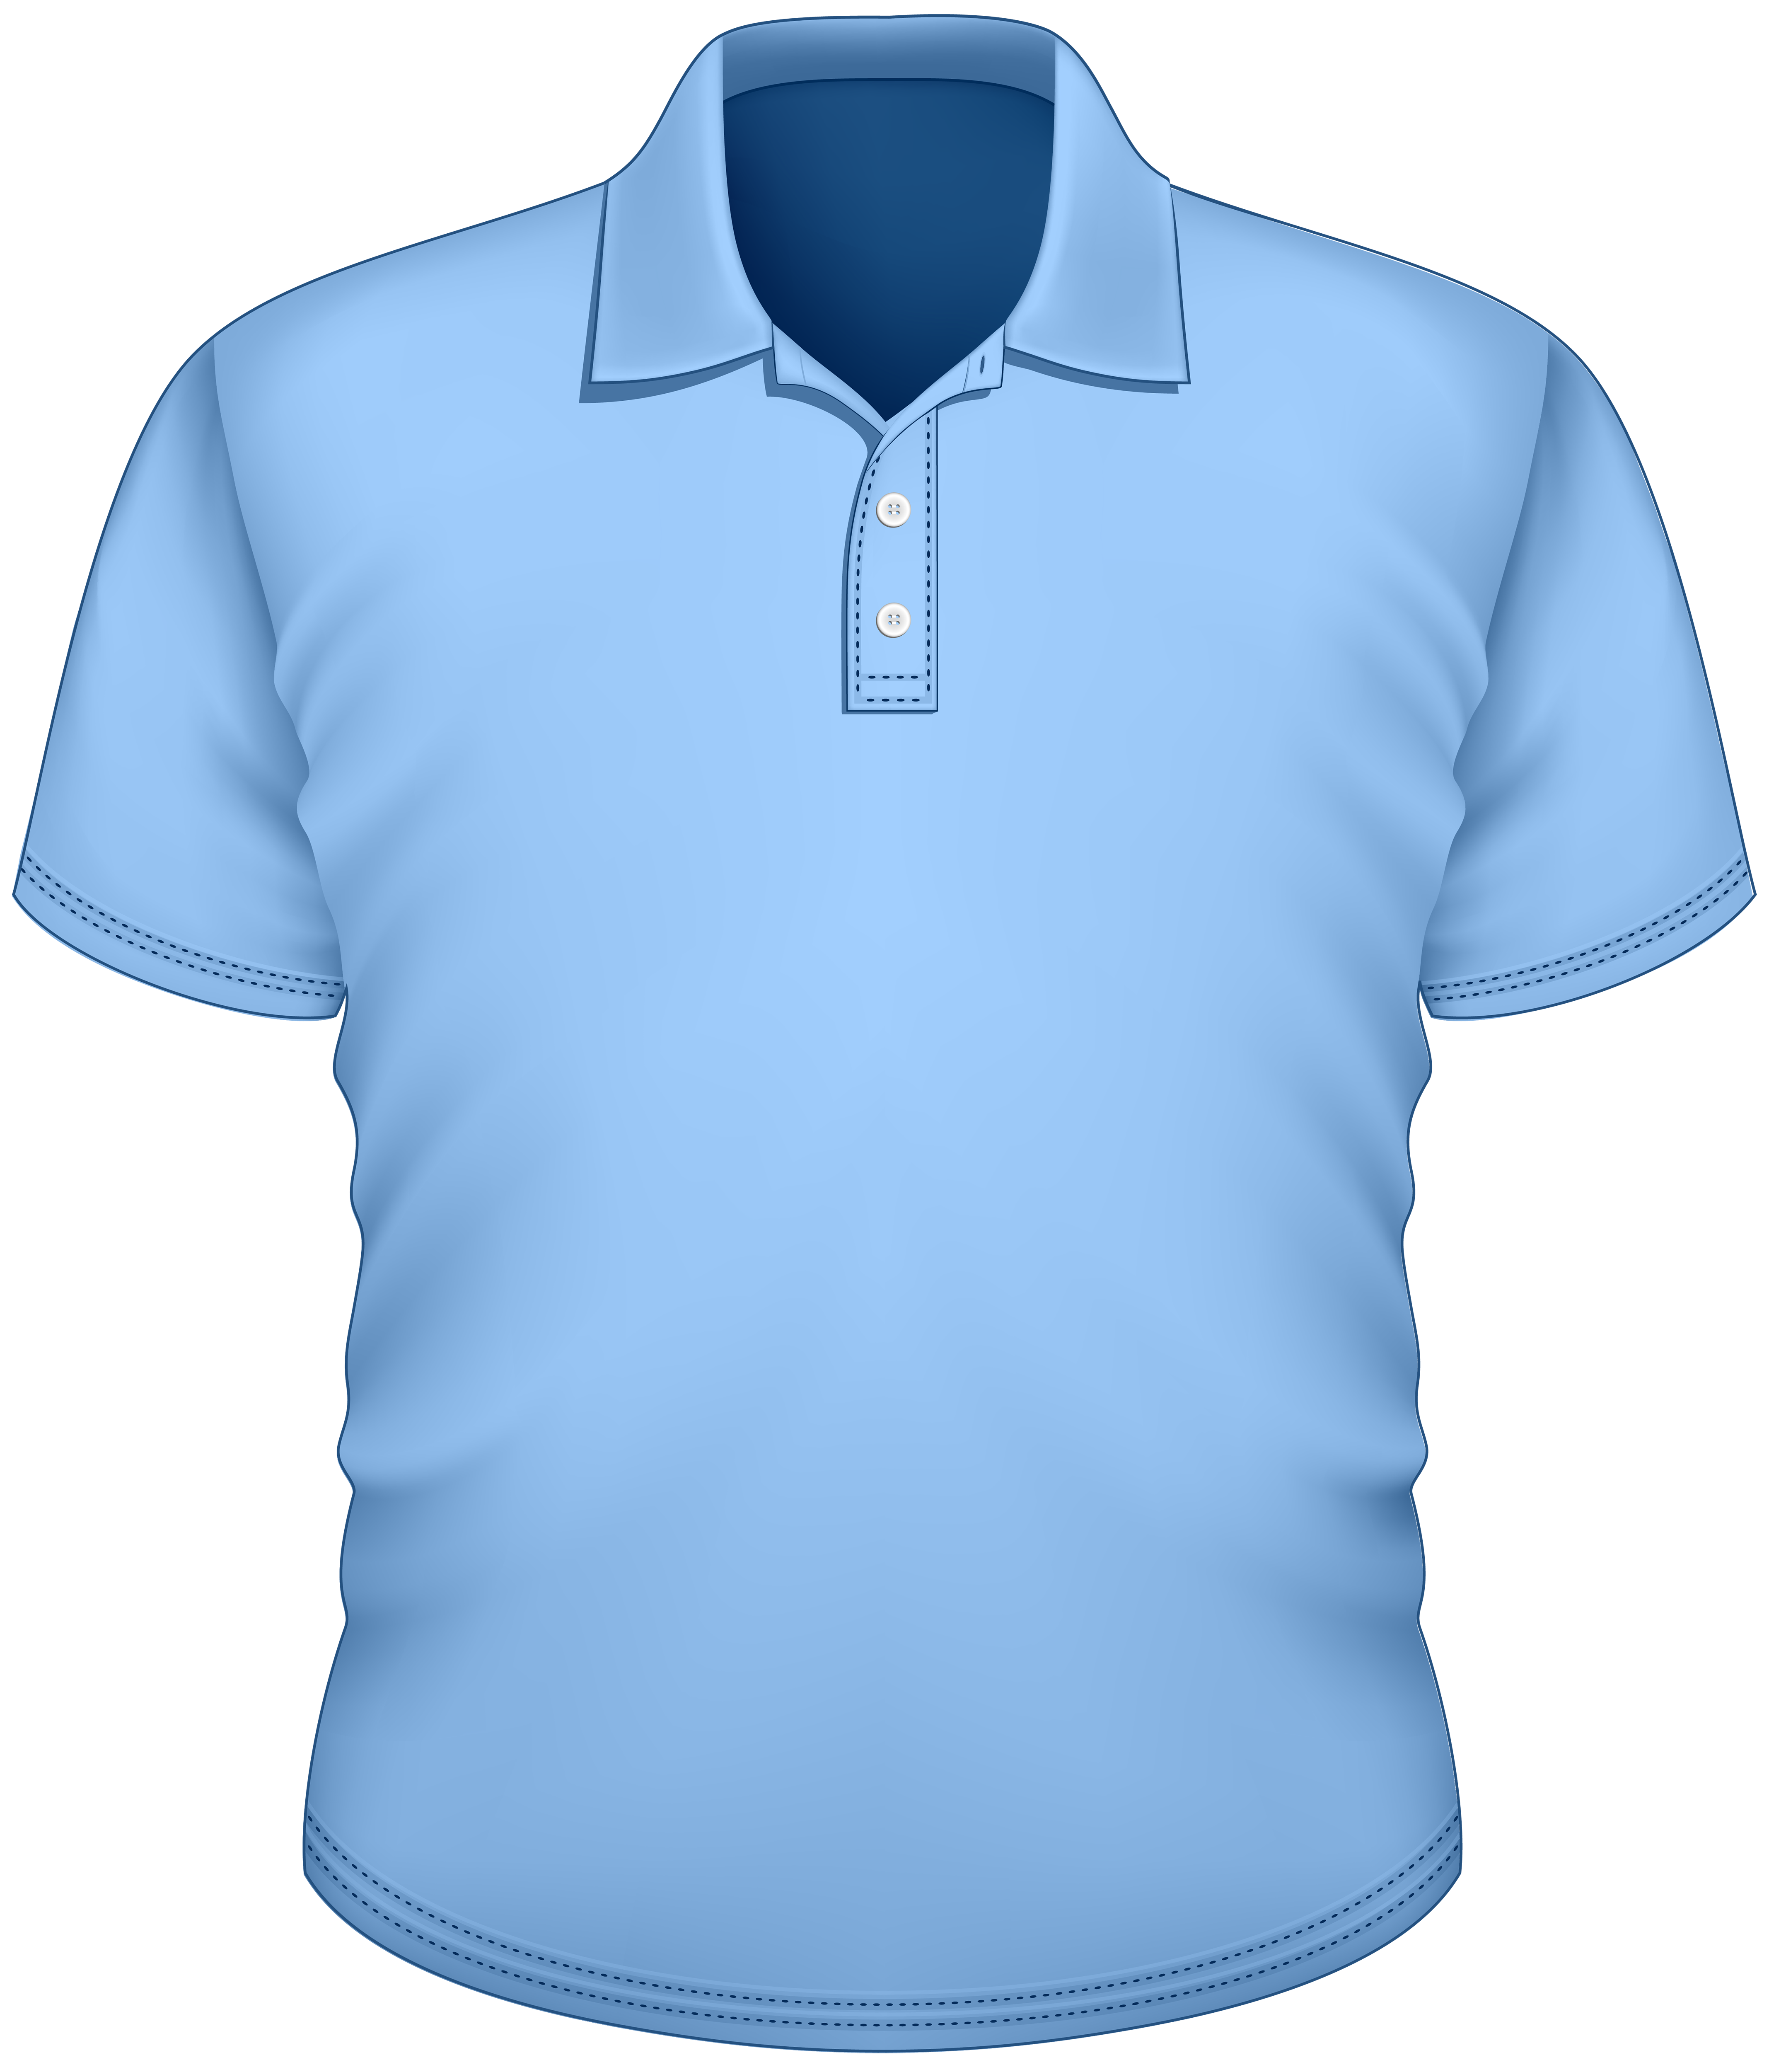 Cleaning clipart washed clothes. Male blue shirt png